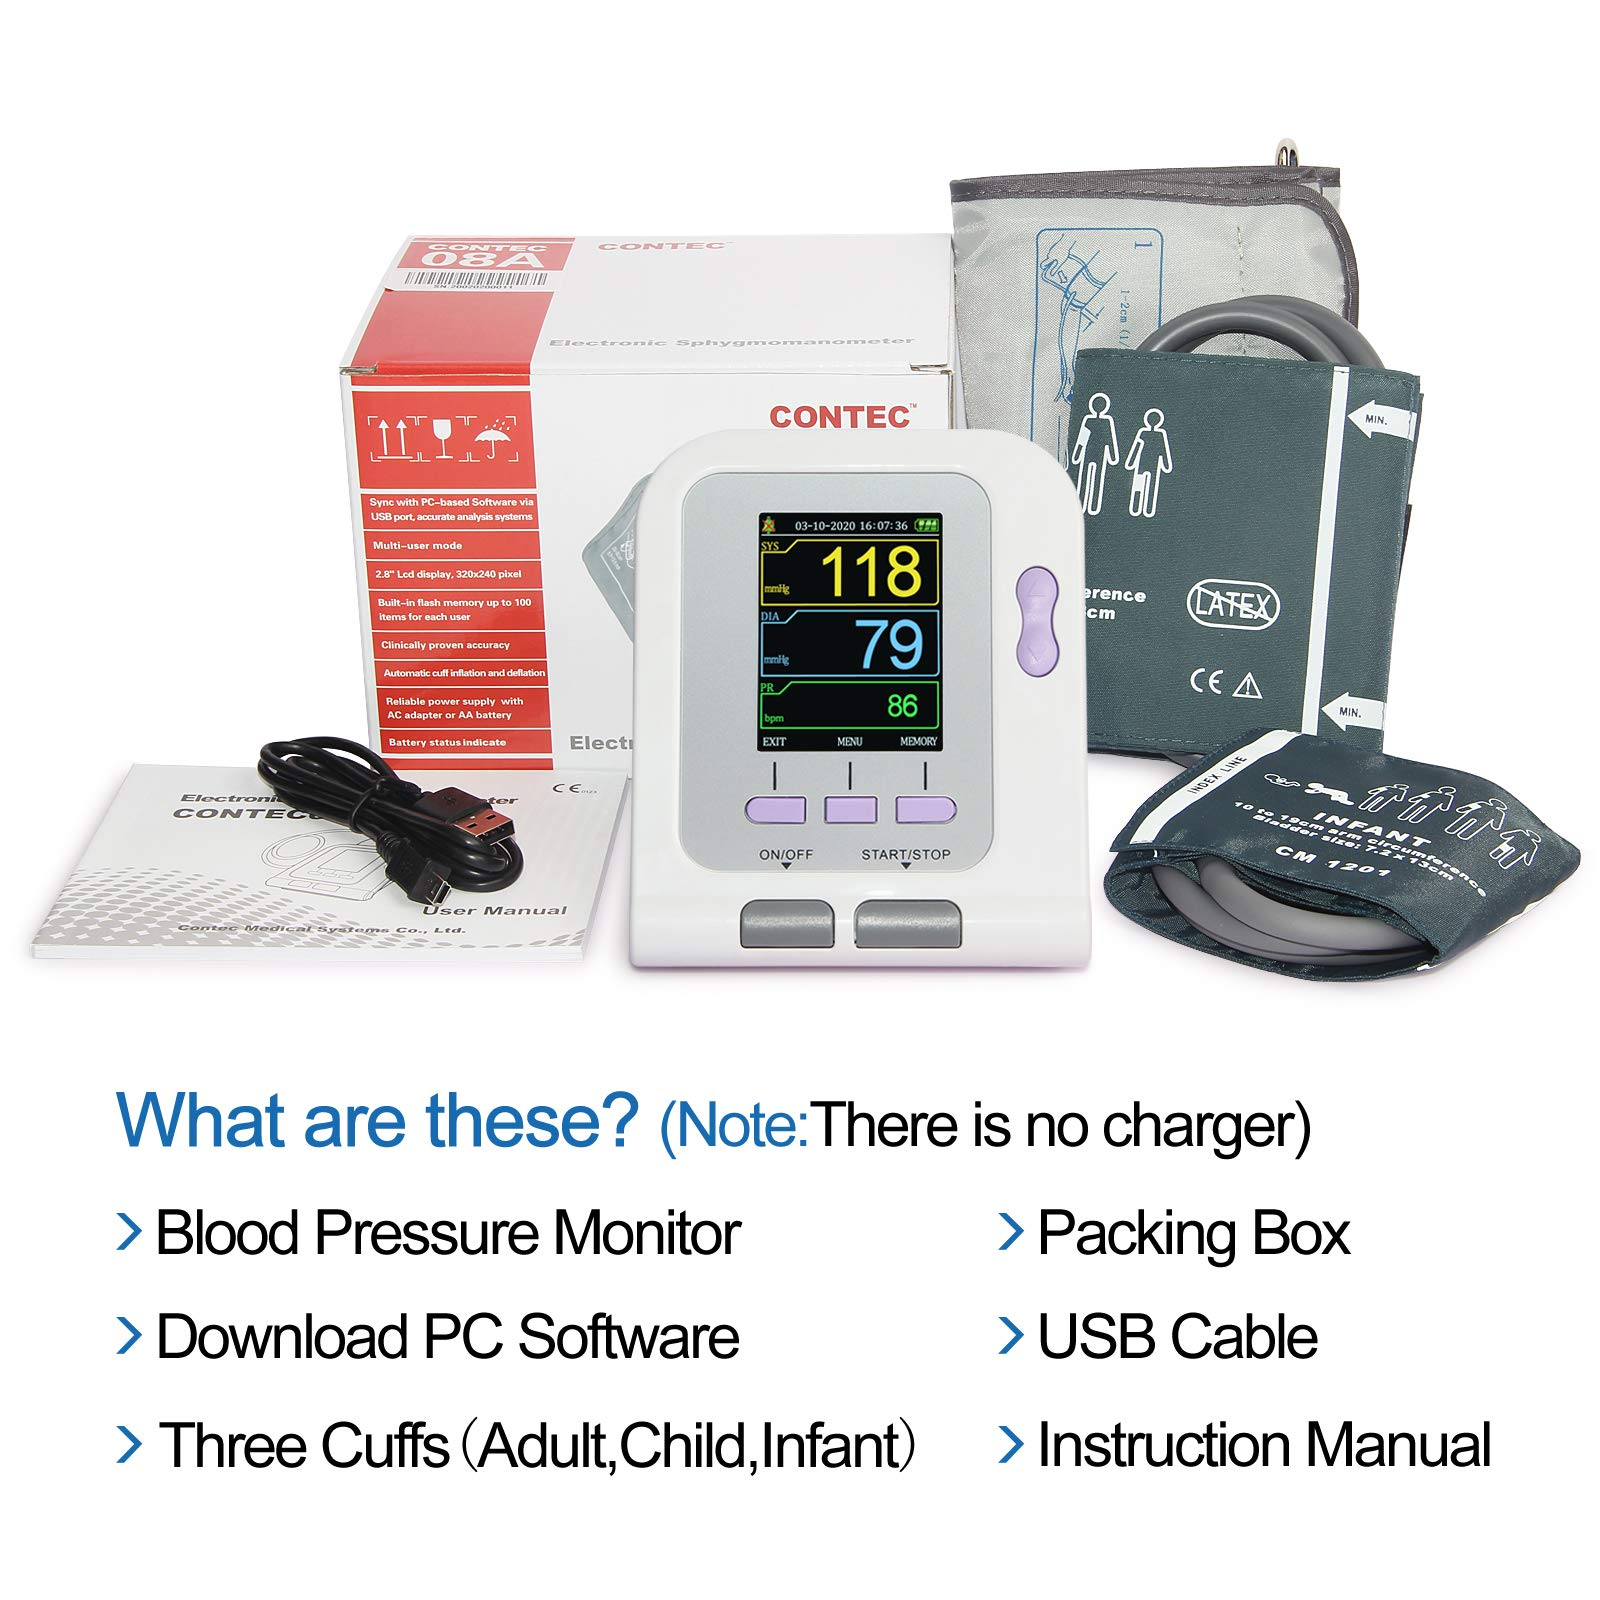 FDA Approved Fully Automatic Upper Arm Blood Pressure Monitor 3 Mode 3 Cuffs Electronic Sphygmomanometer